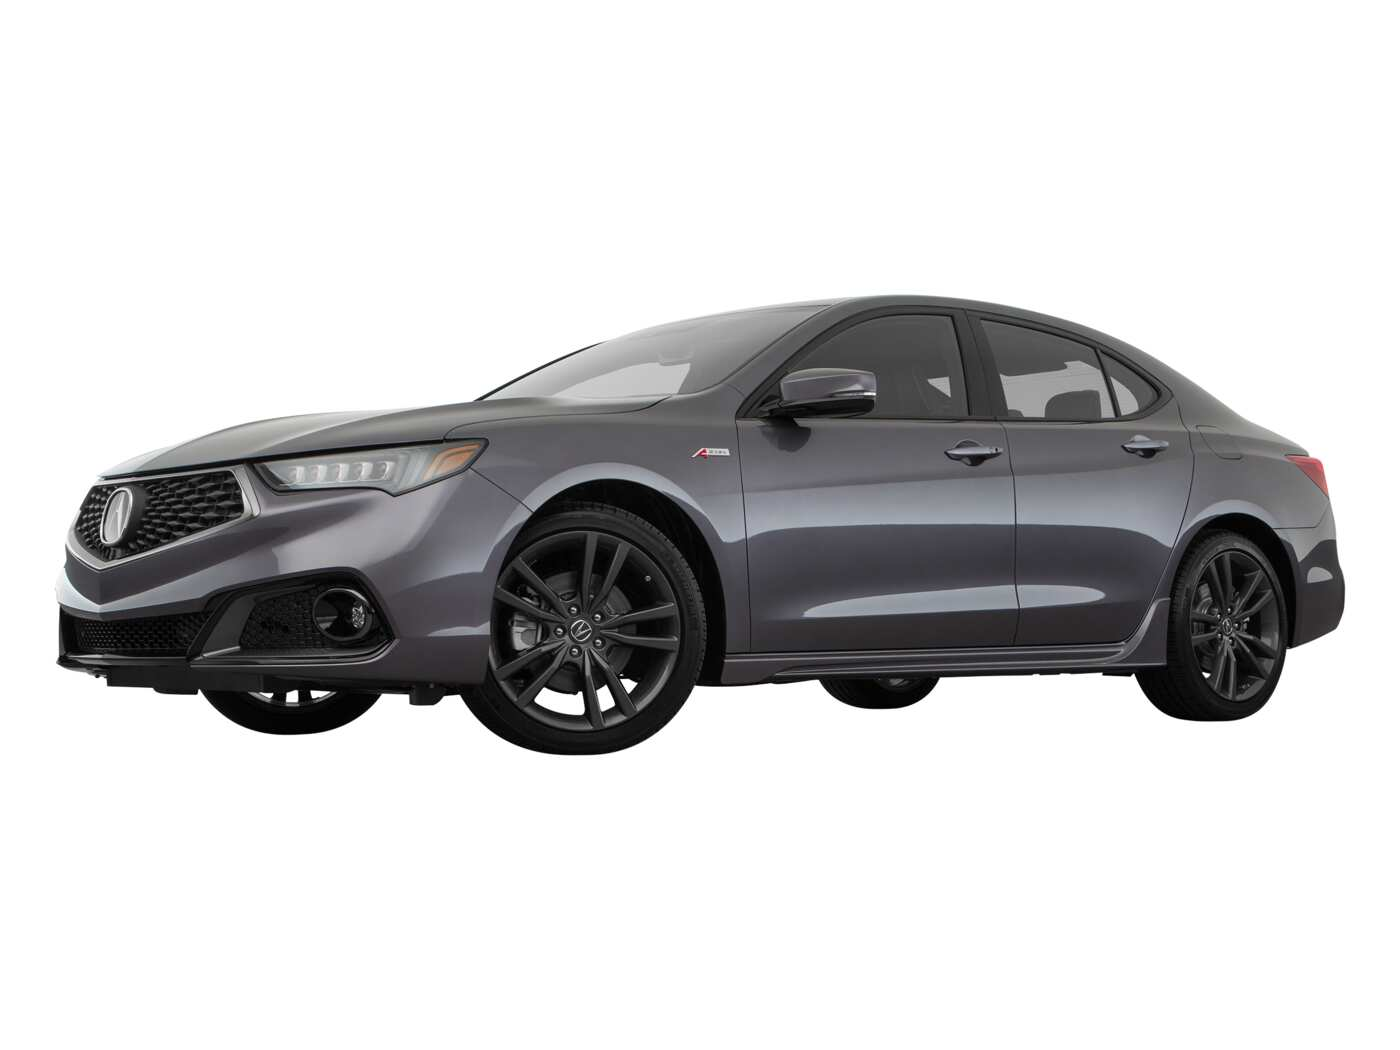 2020 acura tlx 3.5l fwd with a-spec package | ideal auto